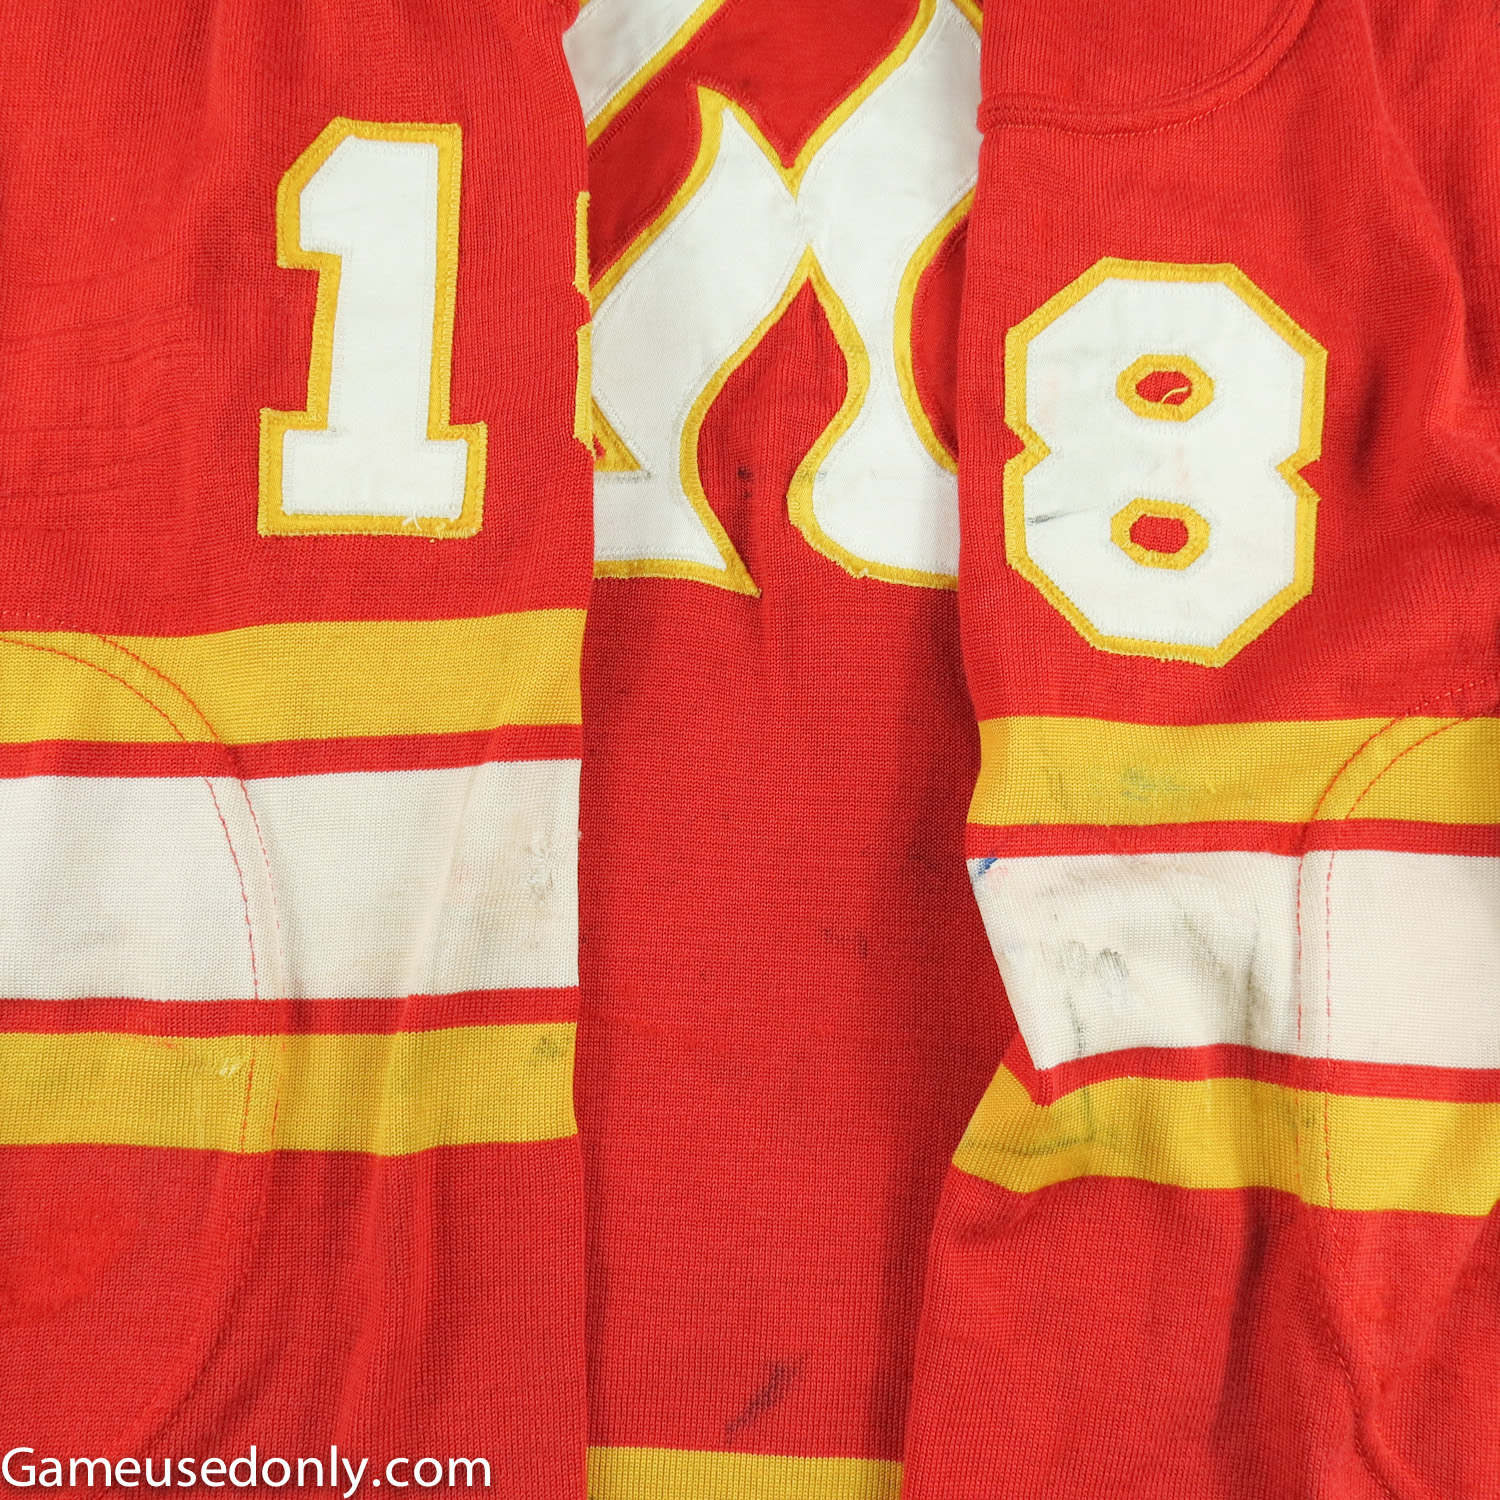 NHL-Game-Worn-Jersey-1973-1974-Flames